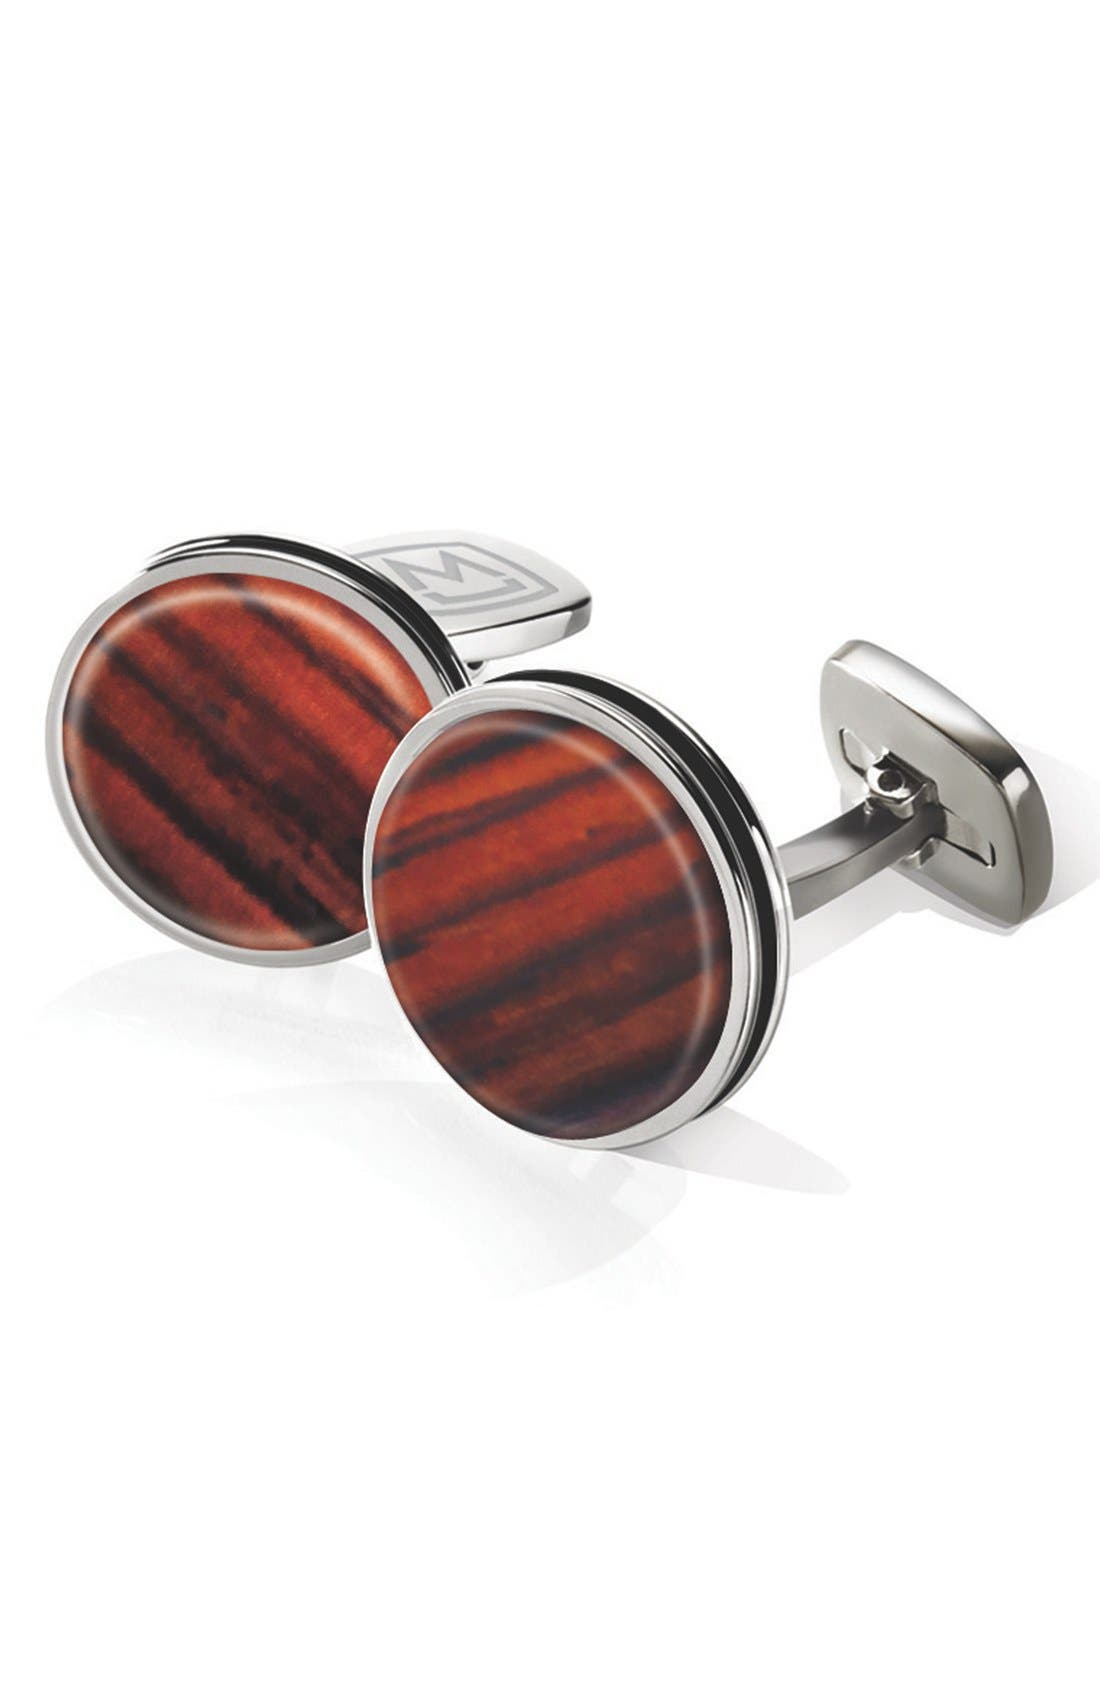 Cocobolo Cuff Links,                         Main,                         color, Stainless Steel/ Cocobolo